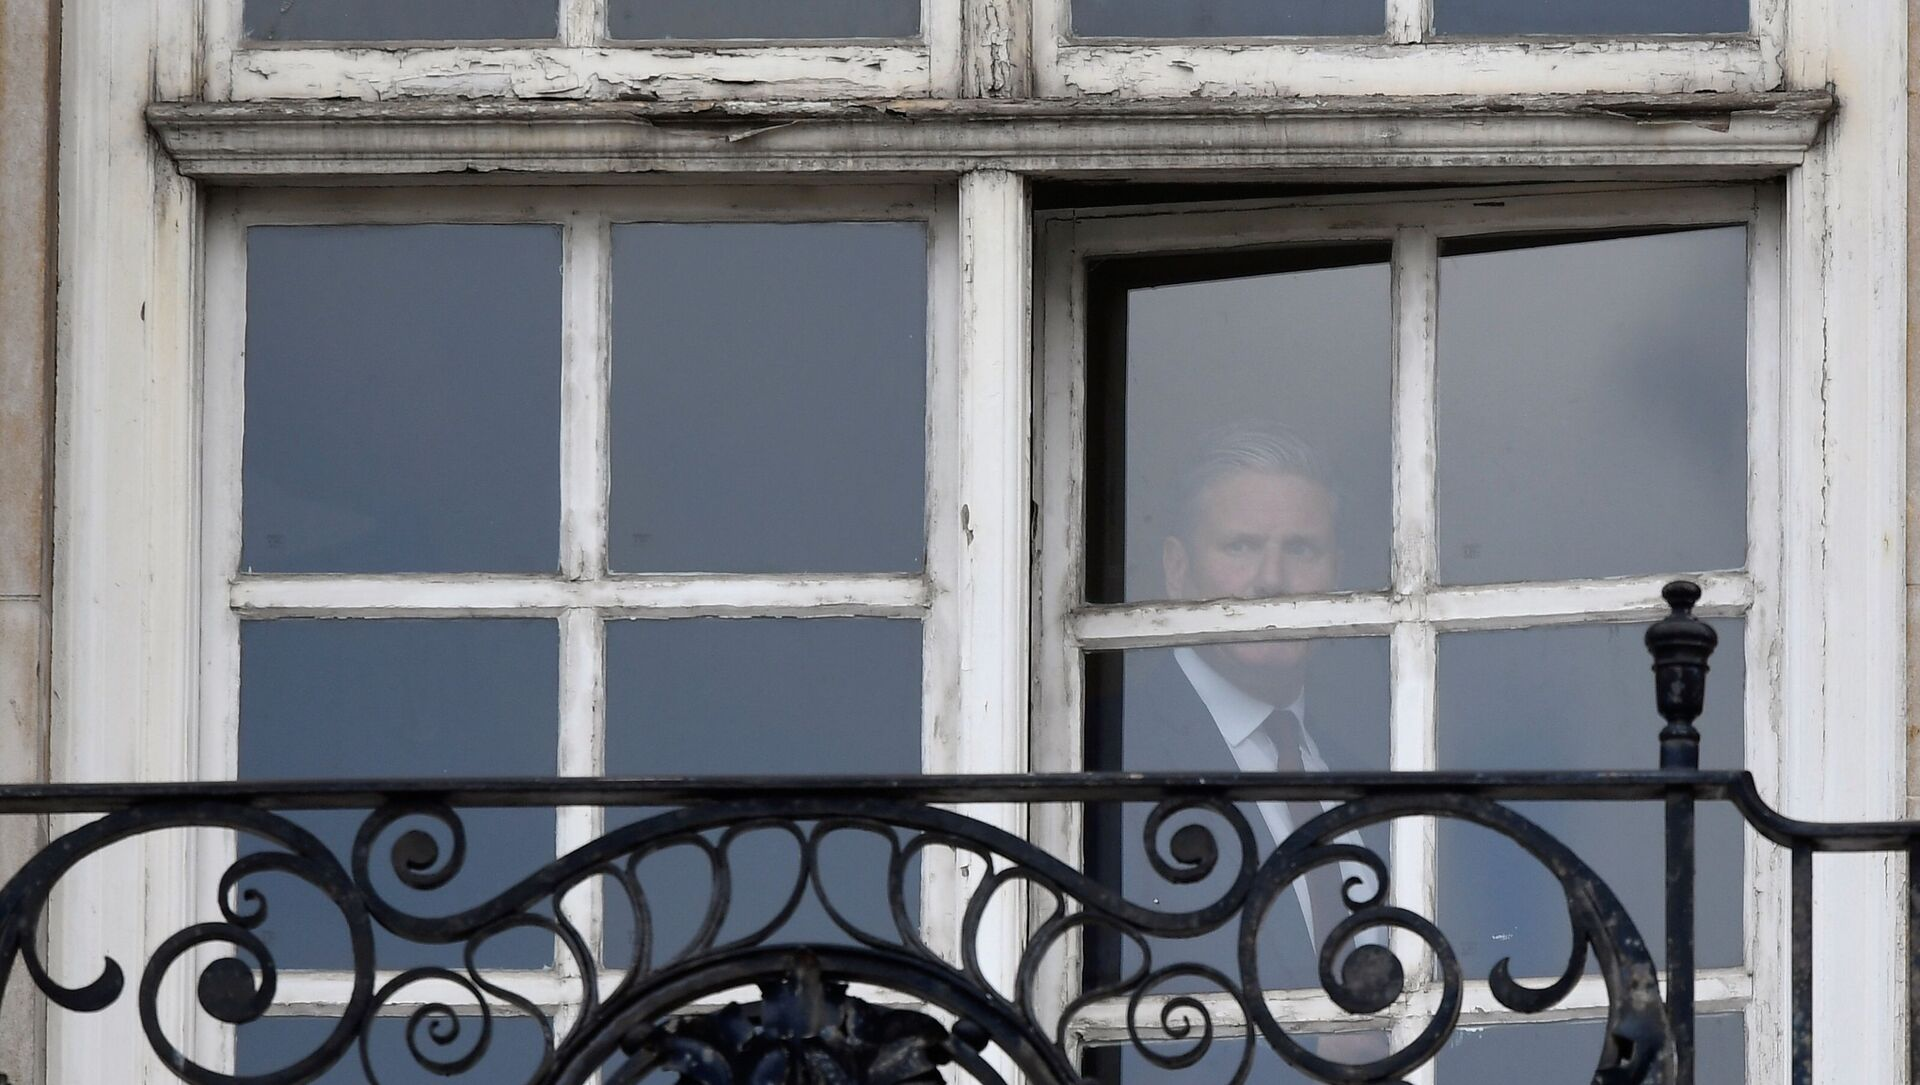 Britain's Labour Party leader Keir Starmer is seen in the window of his offices in London, Britain, May 7, 2021. REUTERS/Toby Melville - Sputnik International, 1920, 07.05.2021